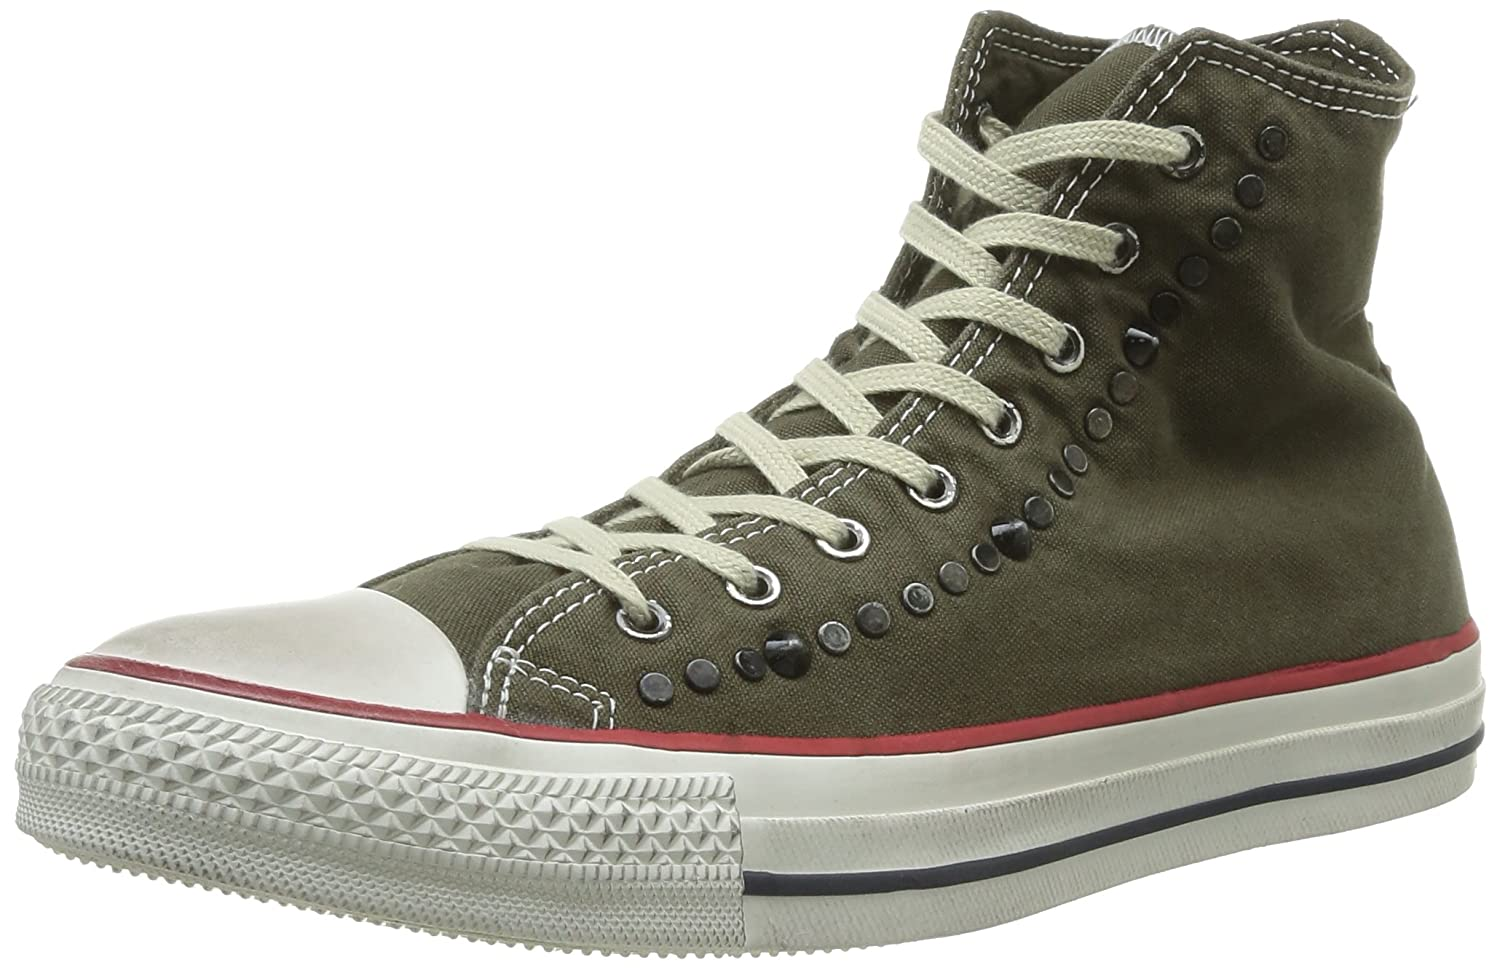 Converse All Star Prem HI Can Wash Stud  Unisex Erwachsene sportschuhe Grape Leaf